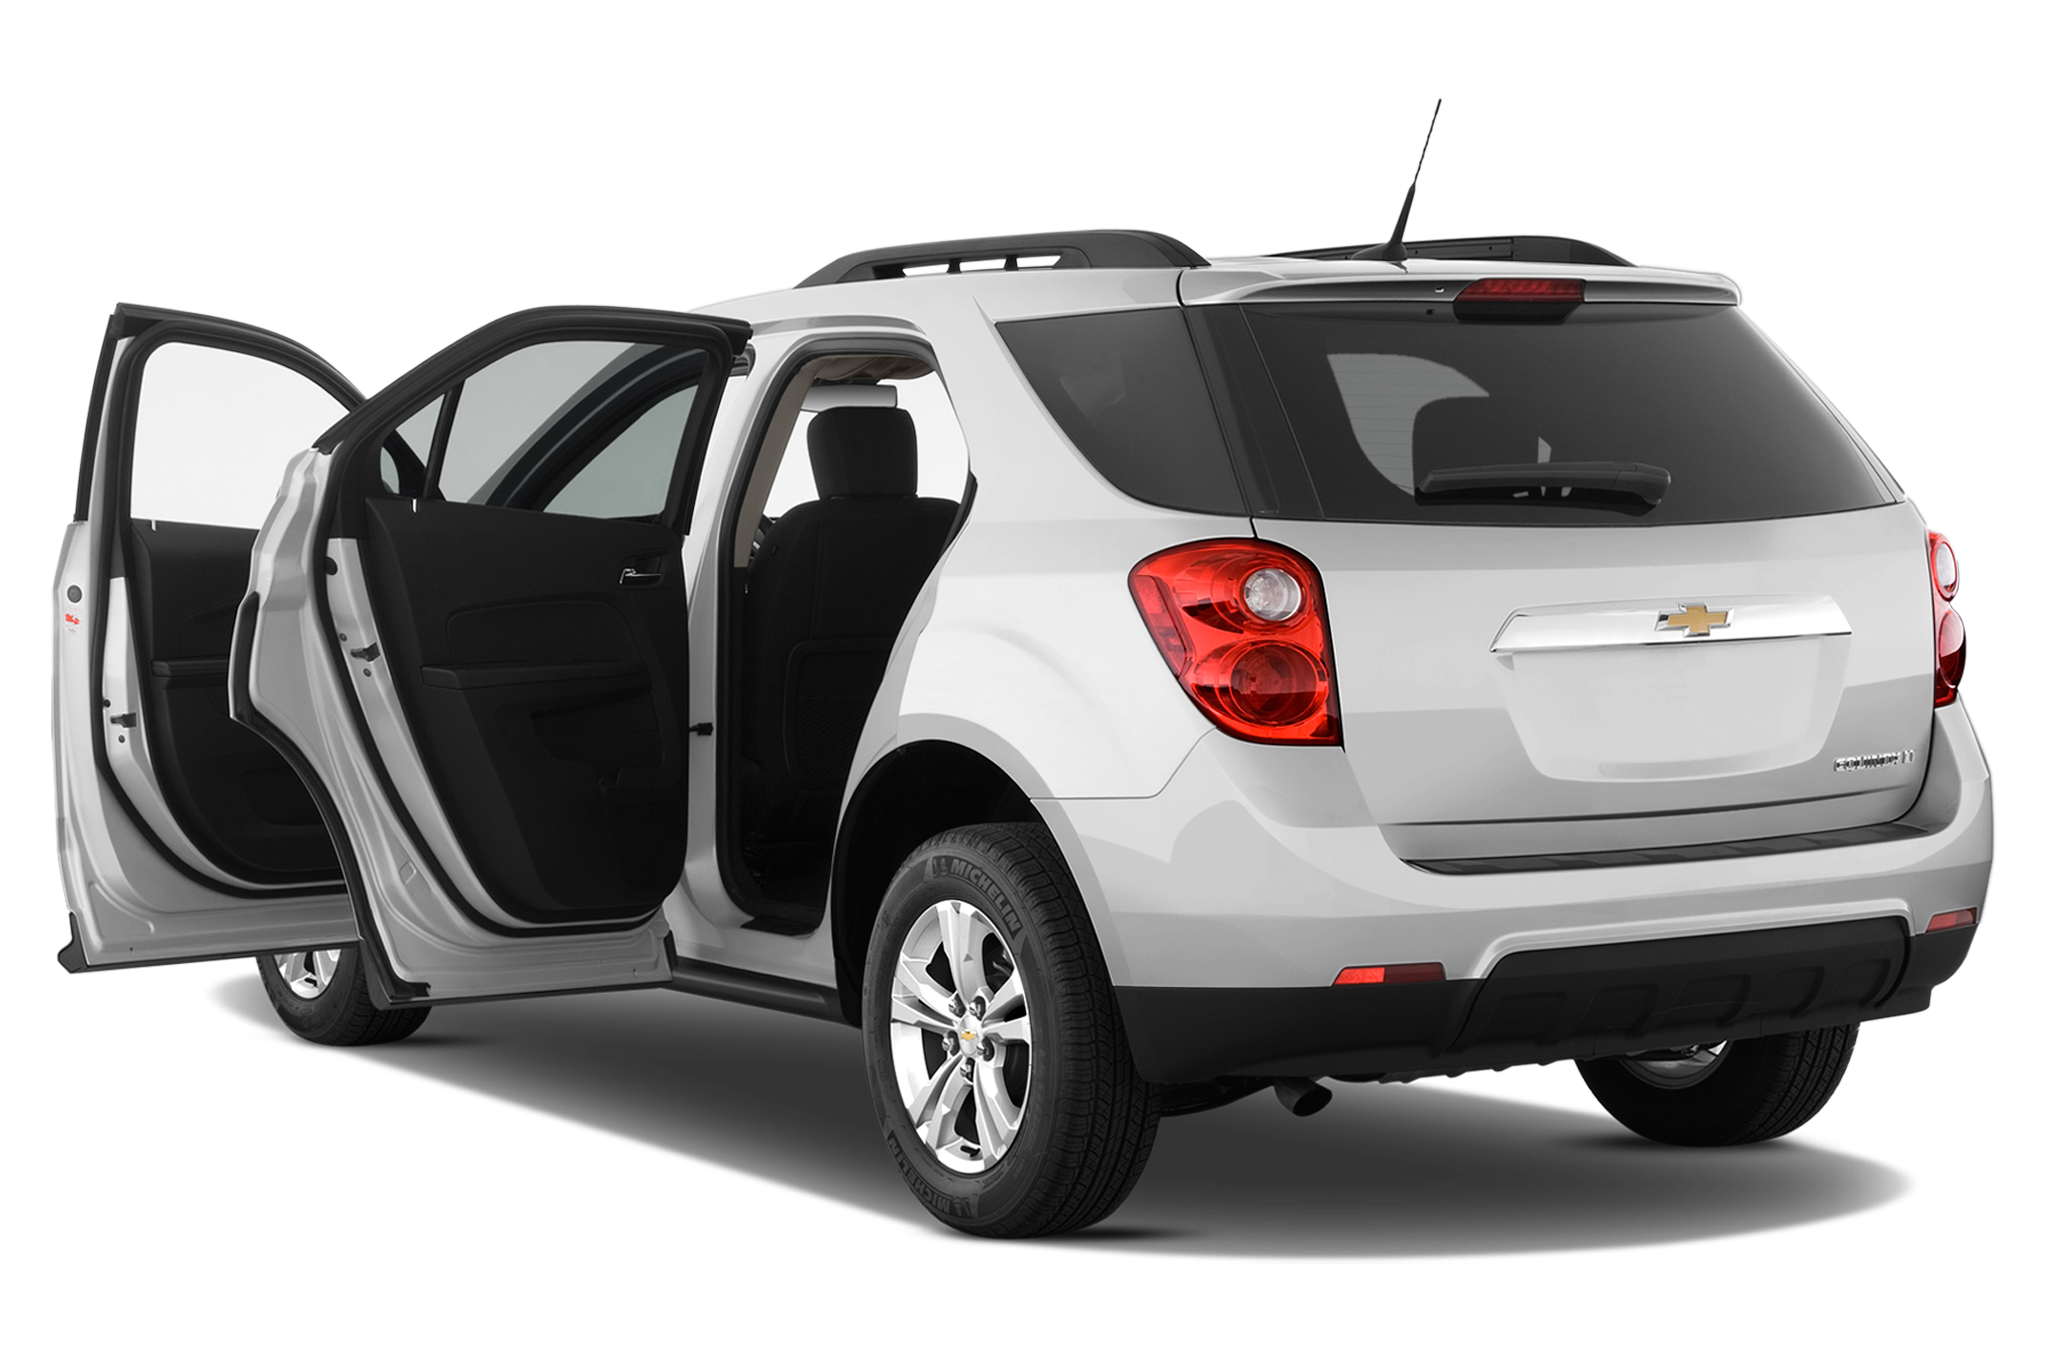 2010 chevrolet equinox chevy crossover suv review. Black Bedroom Furniture Sets. Home Design Ideas